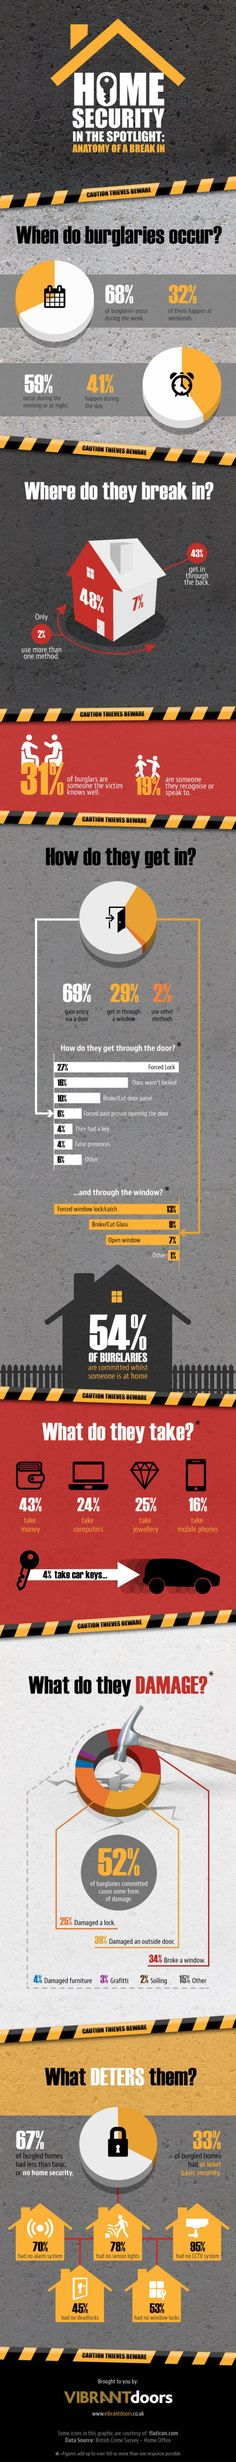 Home Security in the Spotlight  #infographic #HomeSecurity